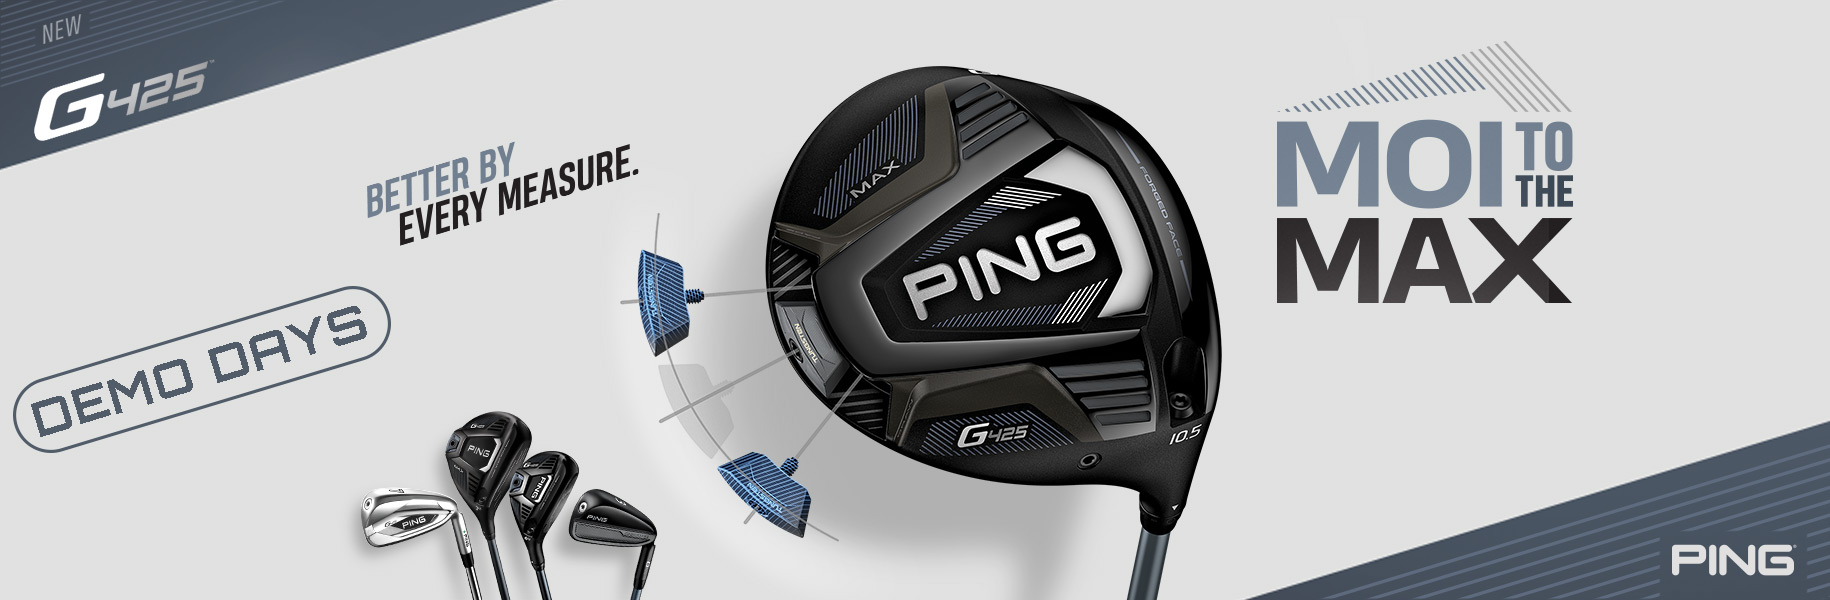 Ping Demo Days at McGuirks Golf